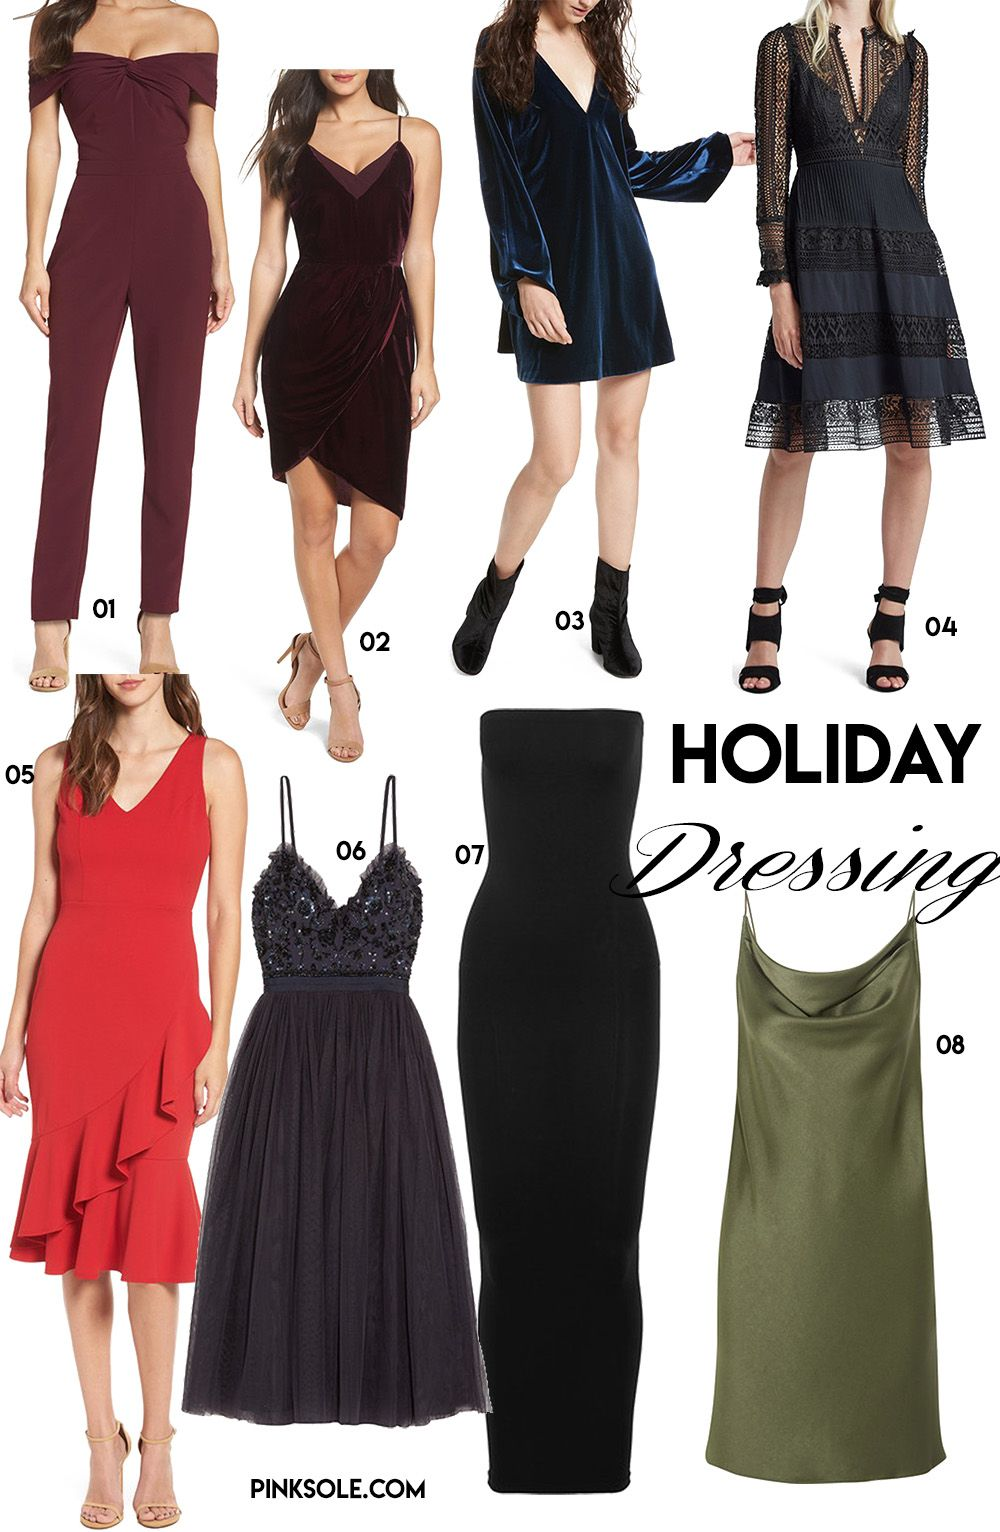 Holiday Dressing Cocktail party outfit, New years eve